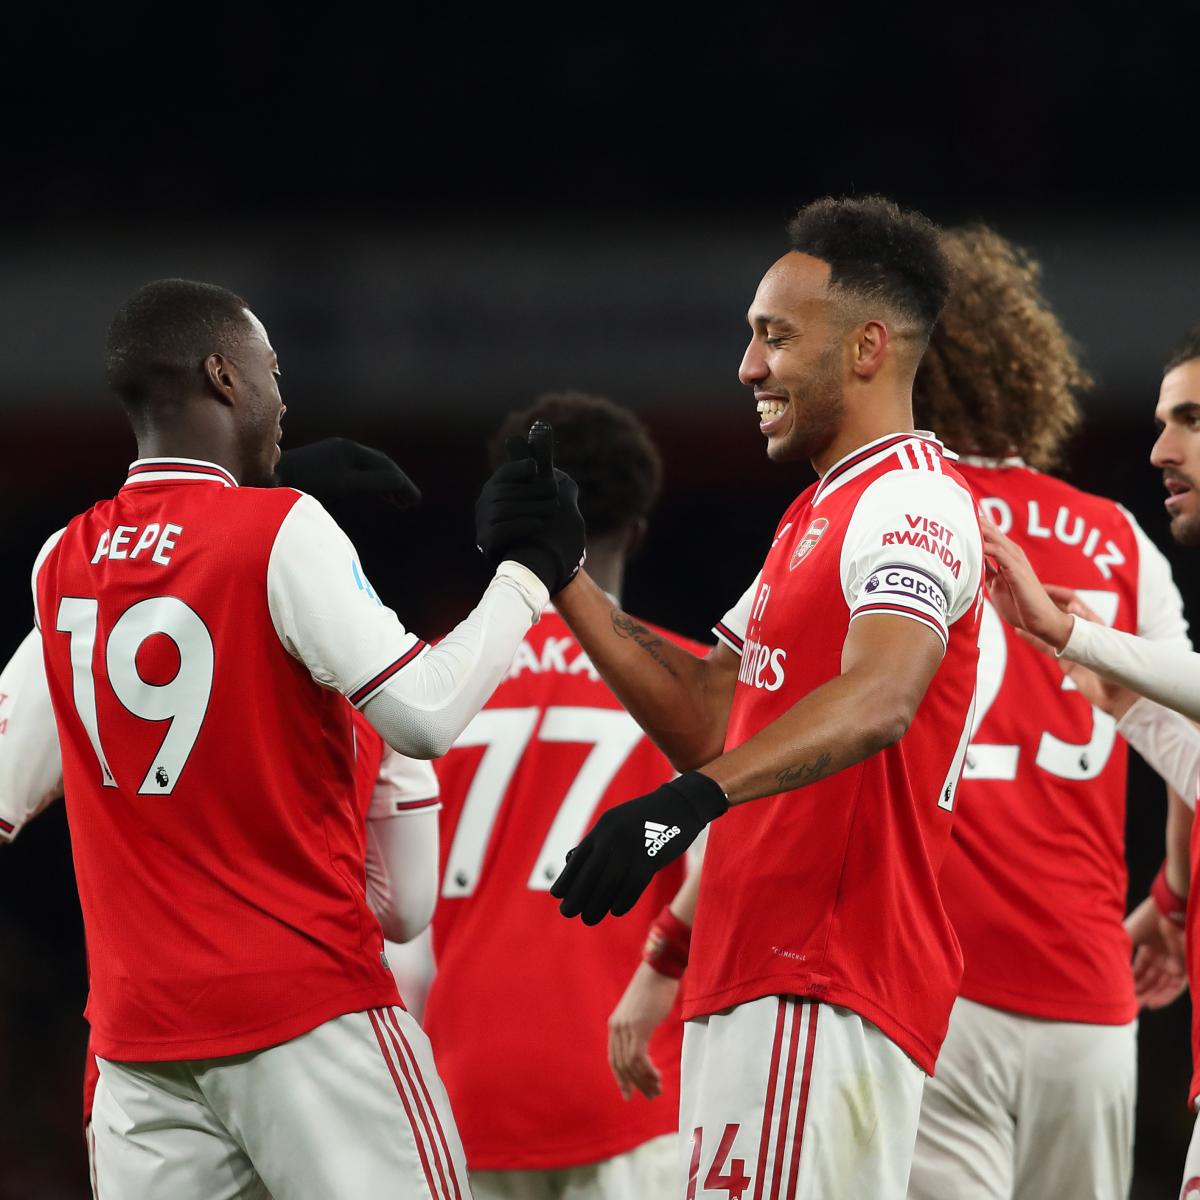 Pierre-Emerick Aubameyang, Arsenal Cruise Past Newcastle in 4-0 EPL Win